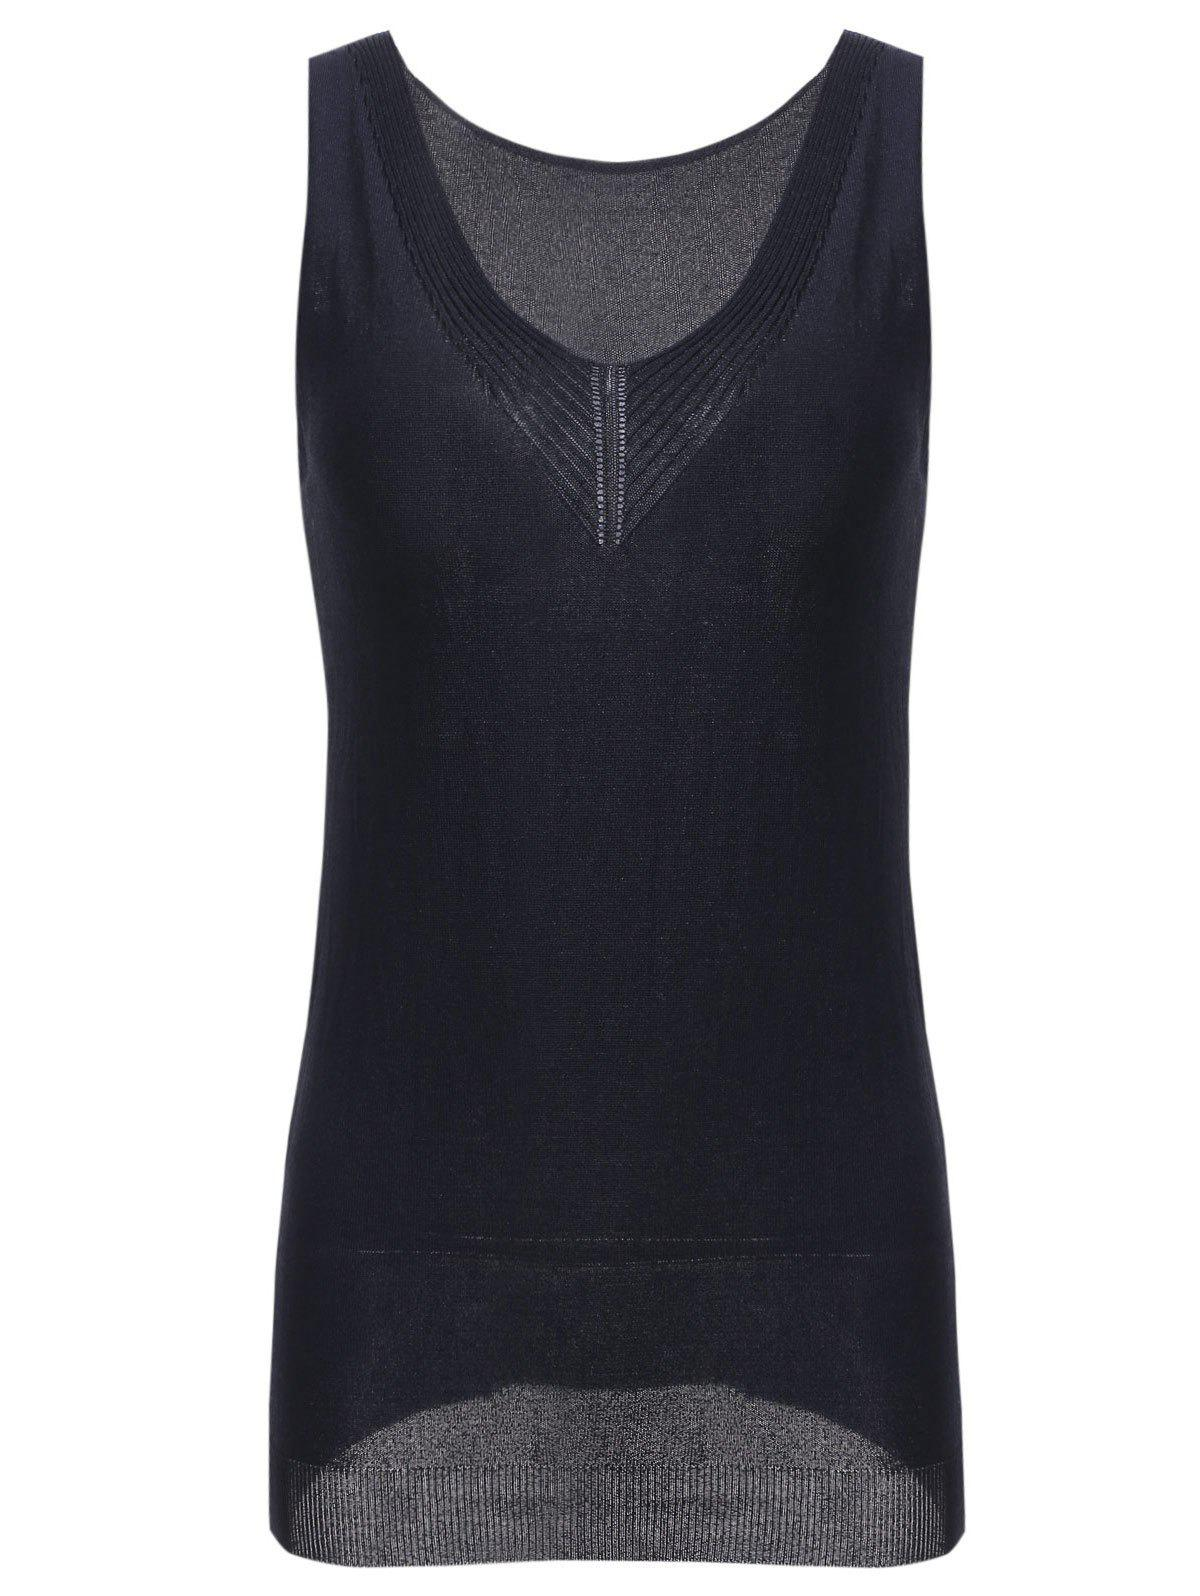 Simple Style Scoop Neck Knitted Women's Tank Top - BLACK ONE SIZE(FIT SIZE XS TO M)